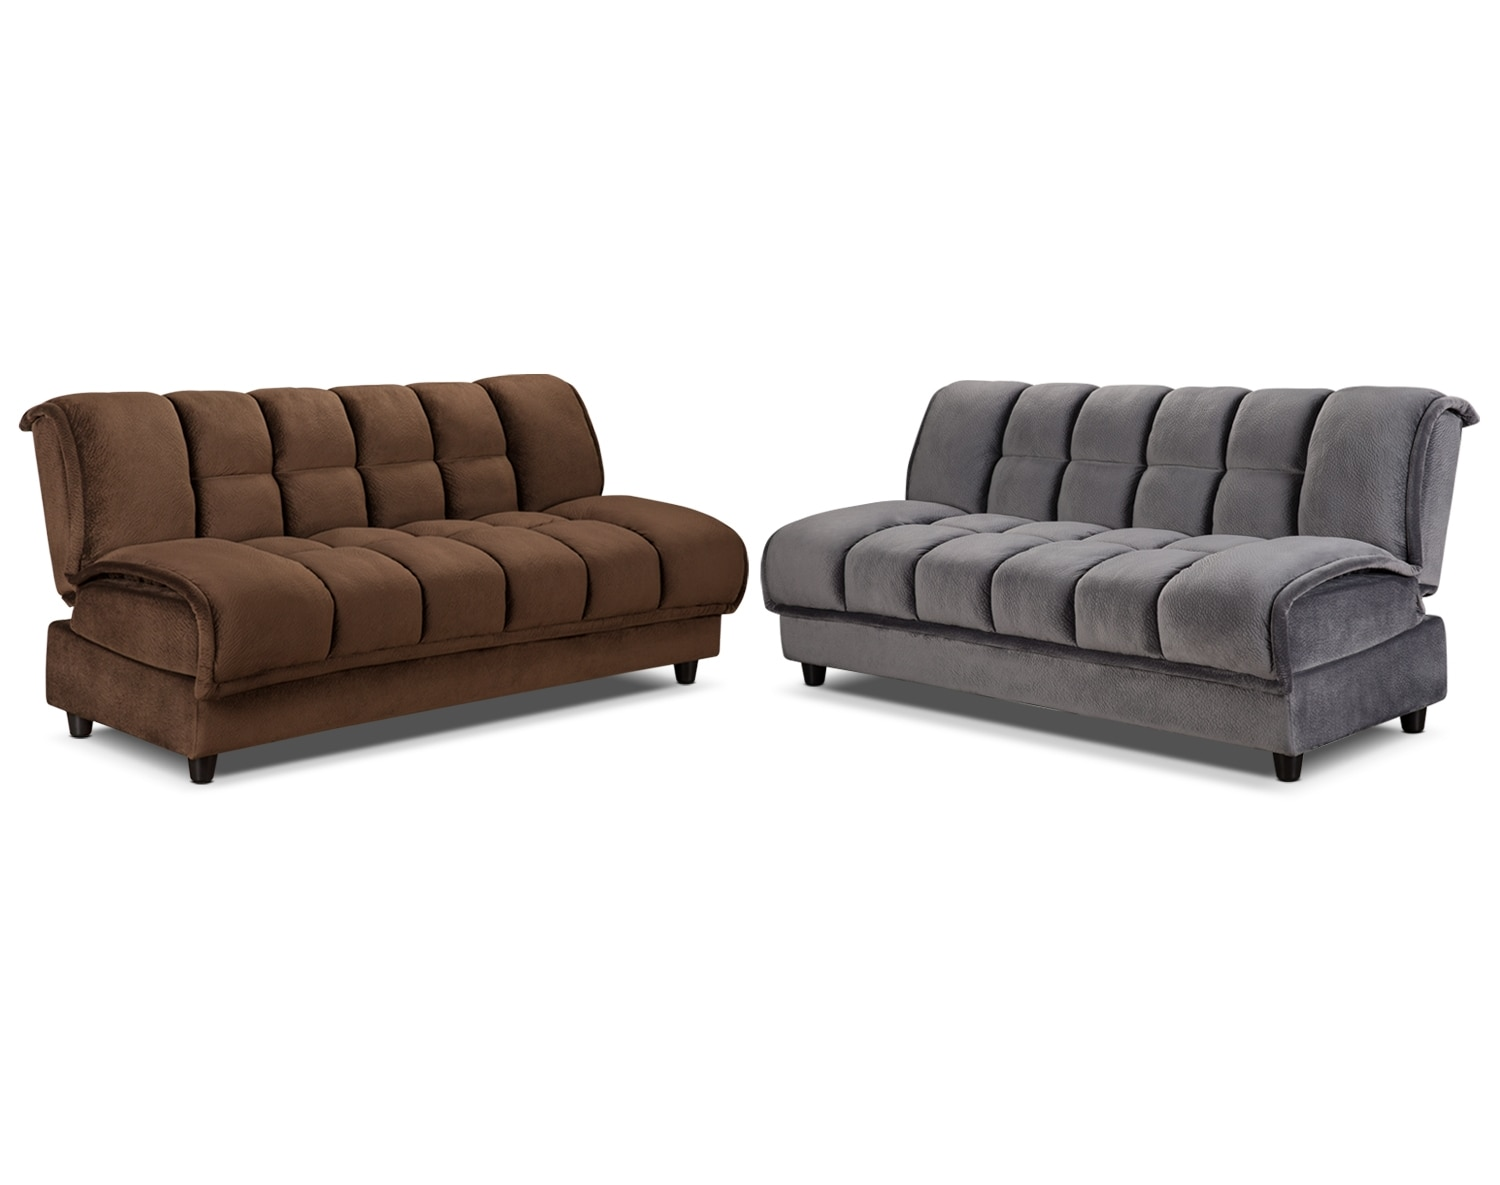 Daybeds Amp Futons Bedroom Furniture American Signature